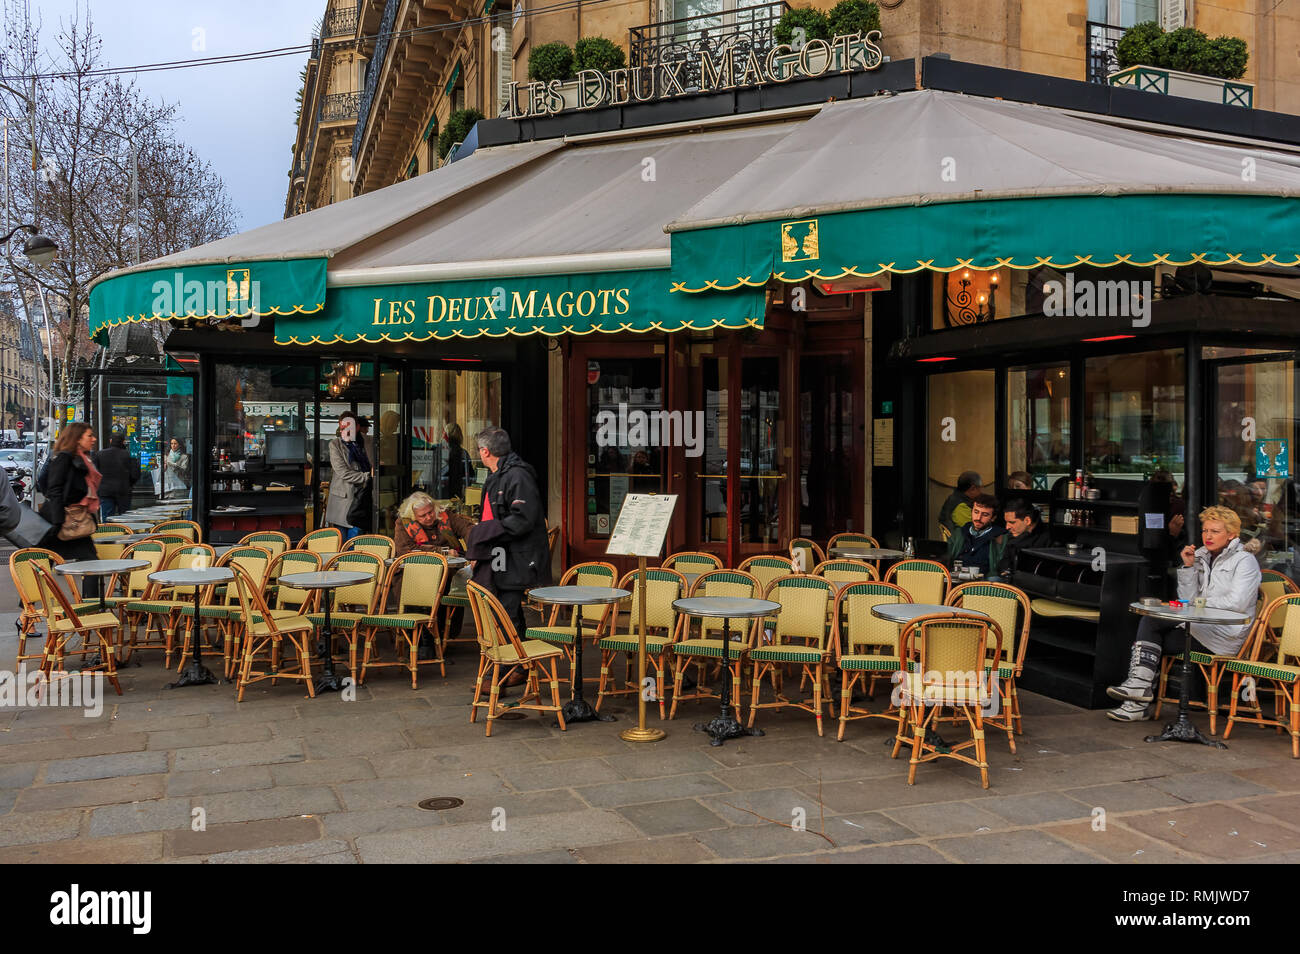 Paris, France - January 22, 2015: Outdoor seating at Les Deux Magots iconic brasserie serving traditional French fare and famous for having hosted gue - Stock Image